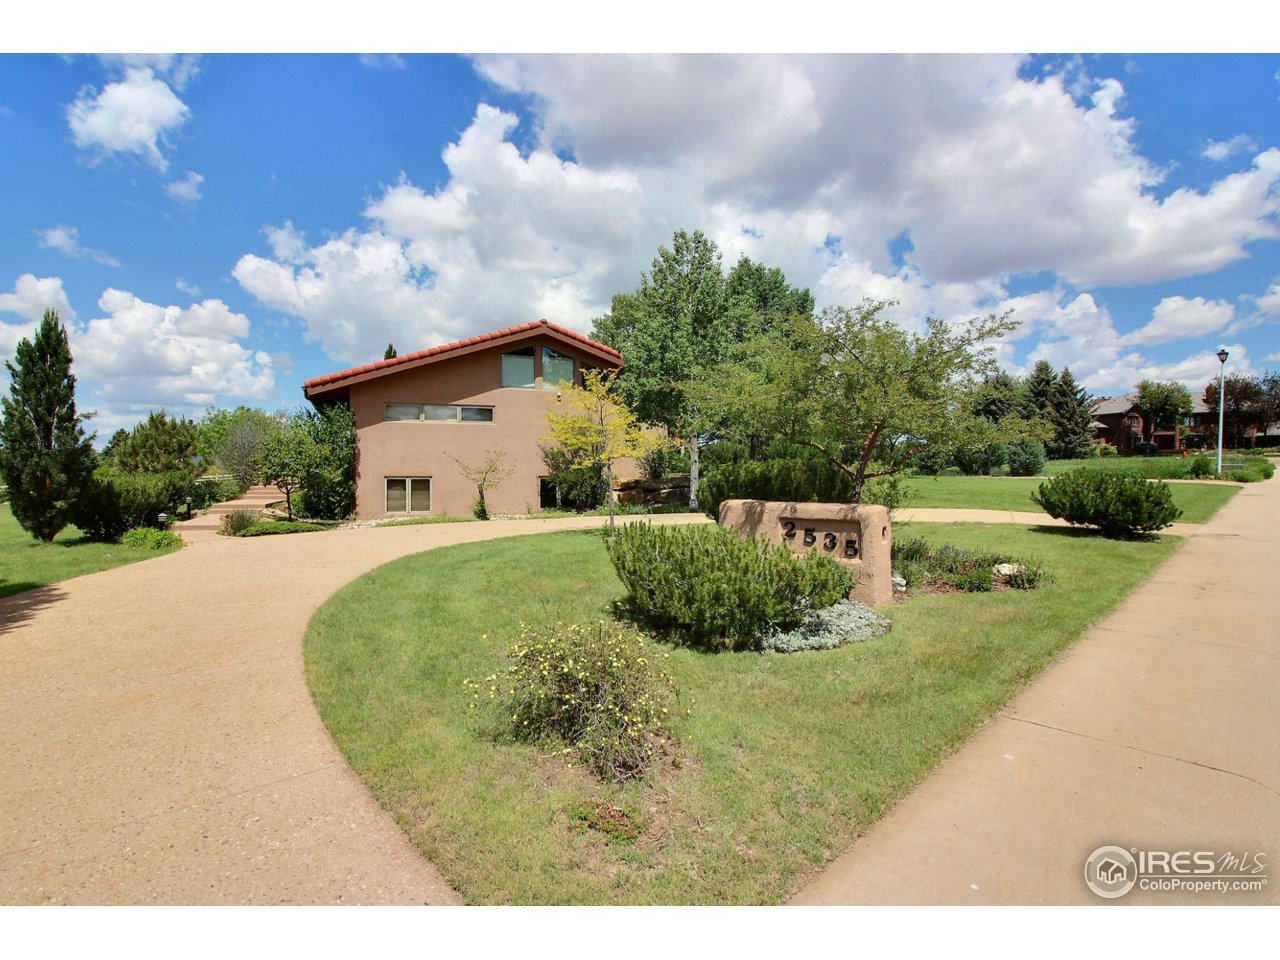 2535 58th Ave, Greeley, CO 80634